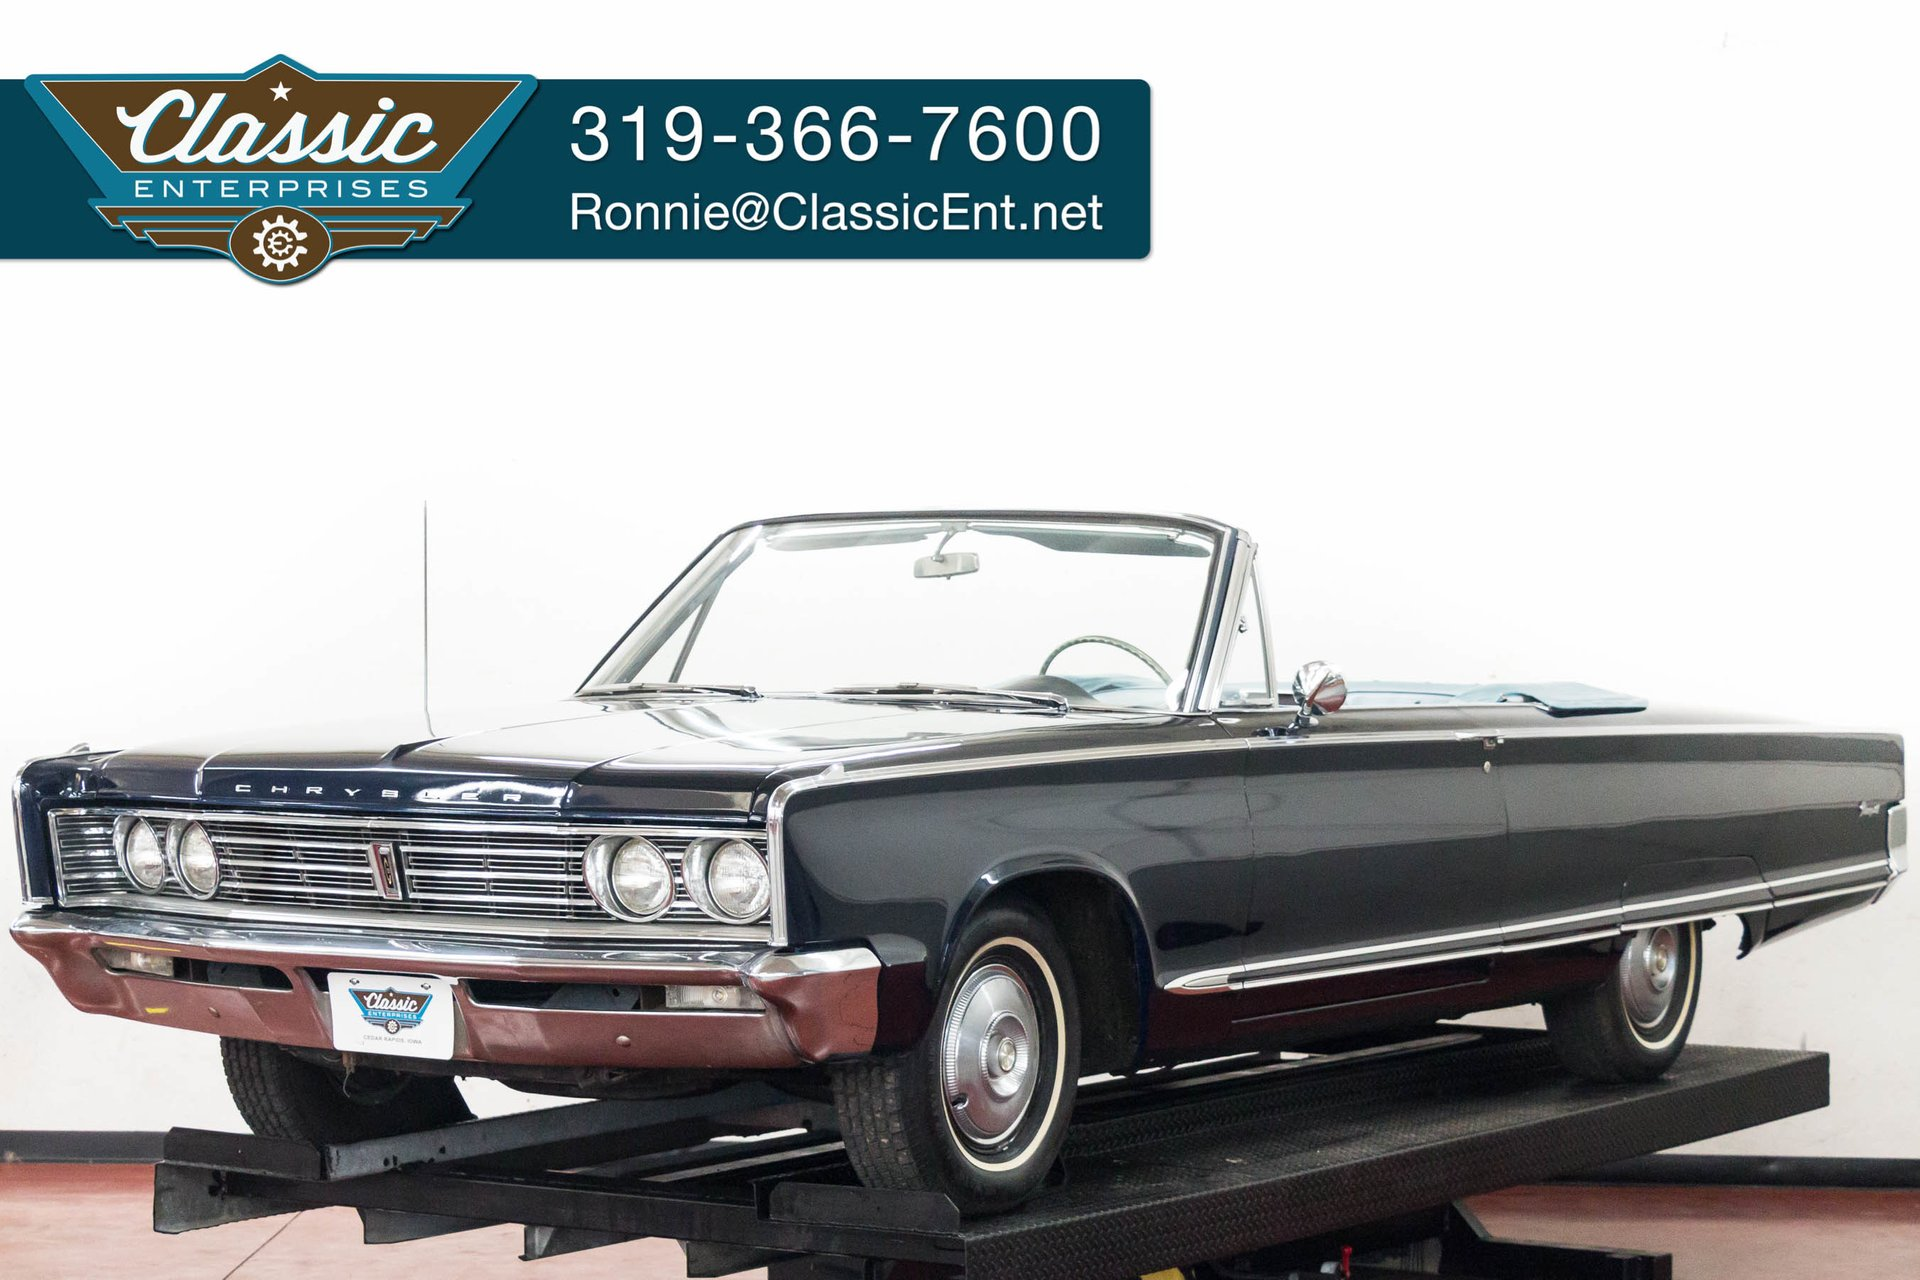 1966 Chrysler Newport